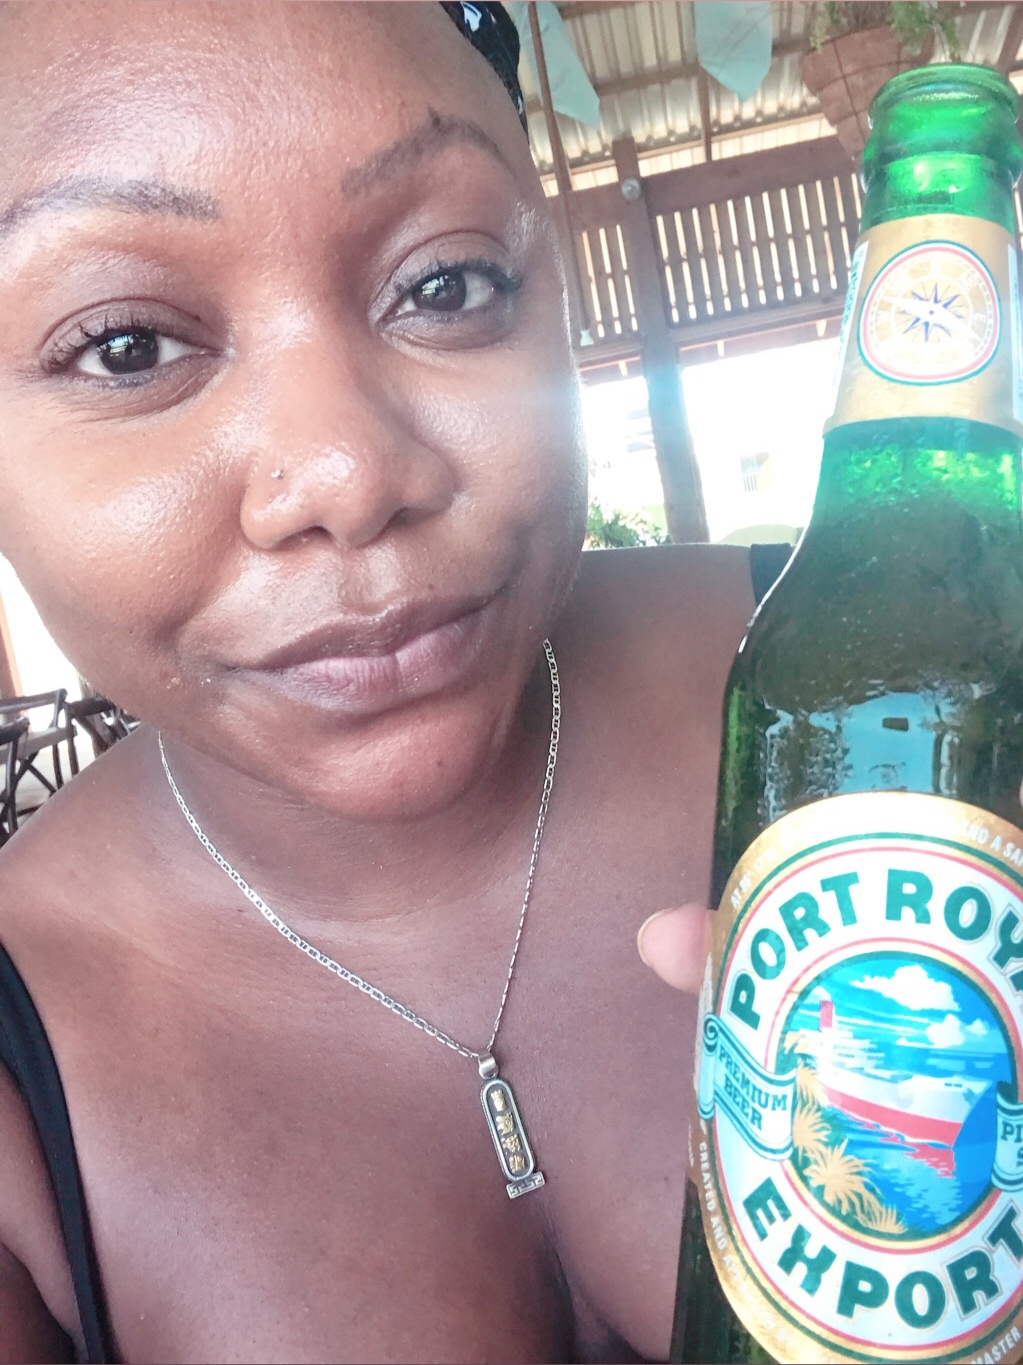 Port Royal Export Beer